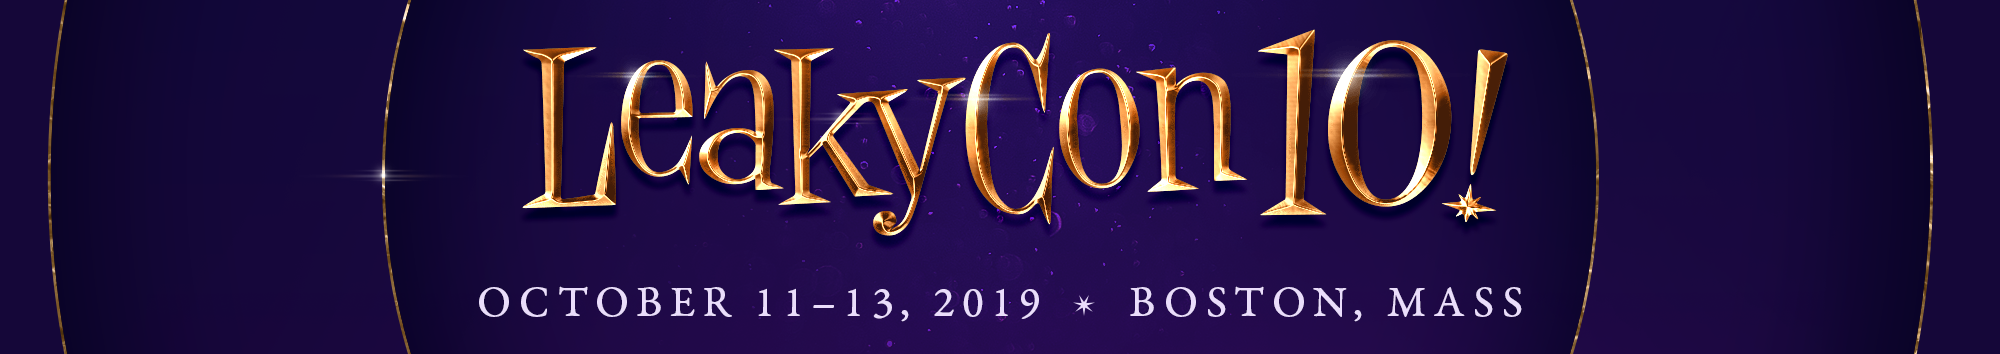 Tickets for LeakyCon 2019: Boston Add-On Experiences in Boston from ShowClix